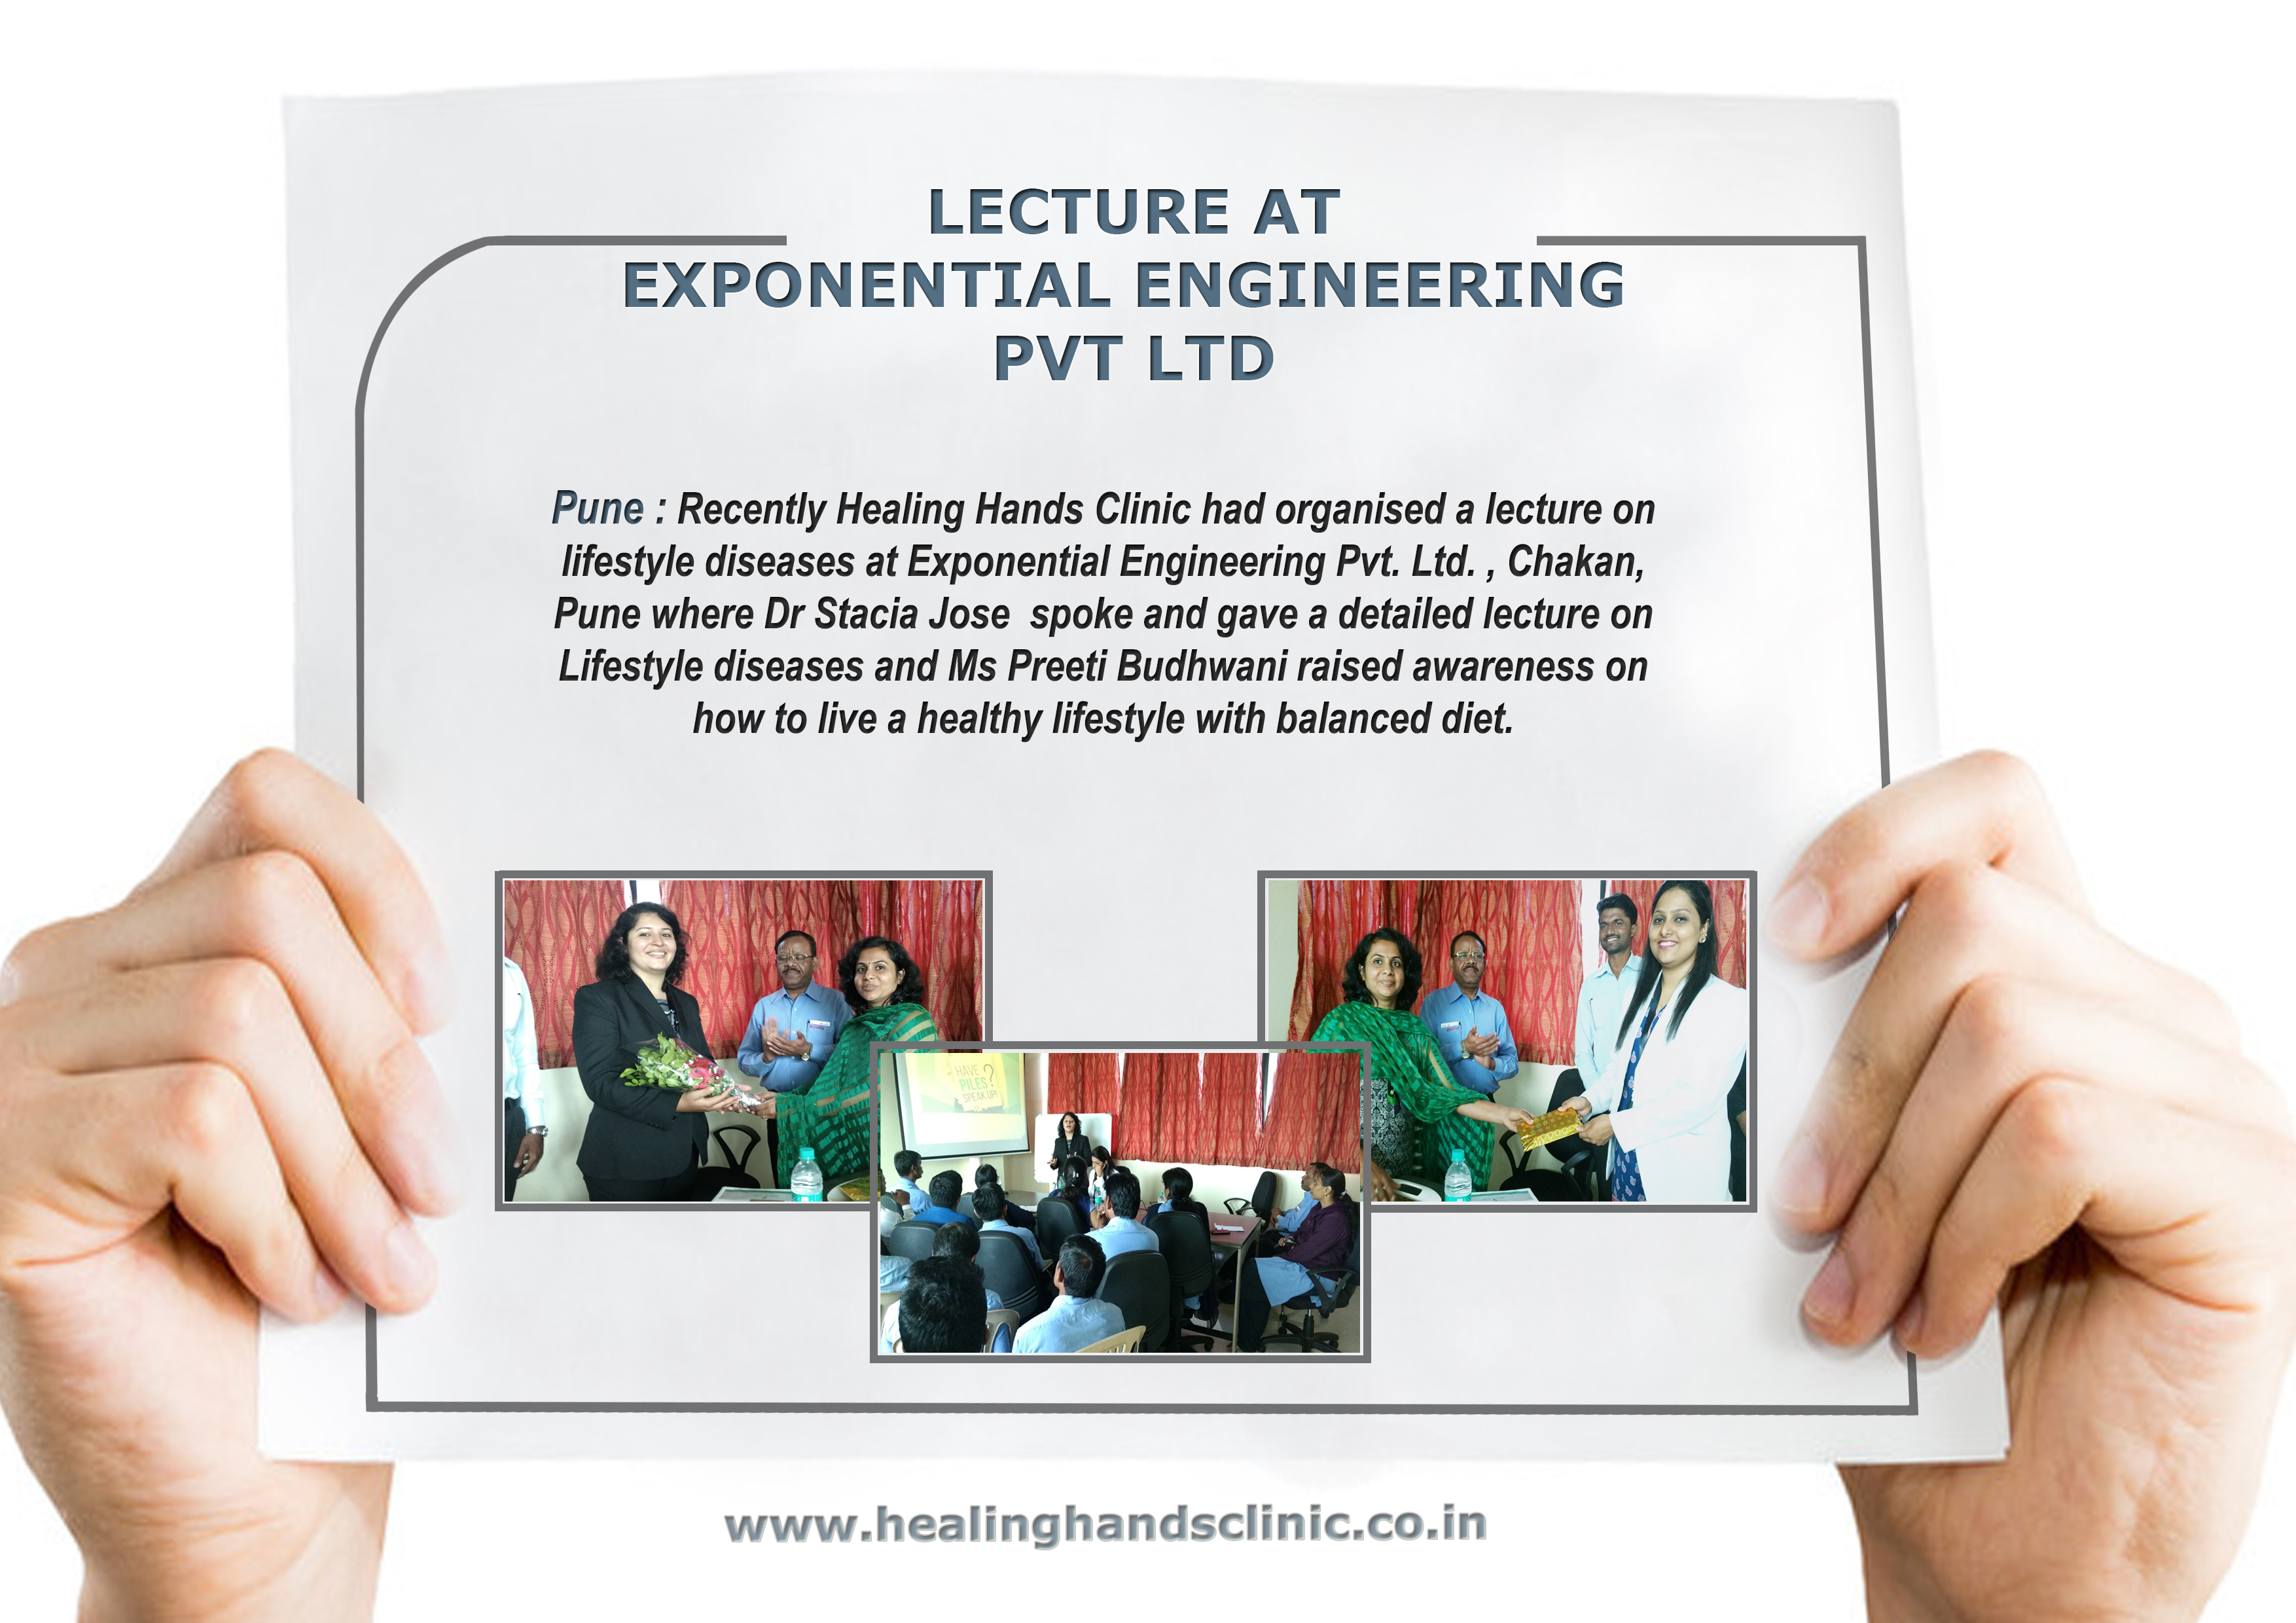 Lecture at exponential engineering pvt. Ltd.